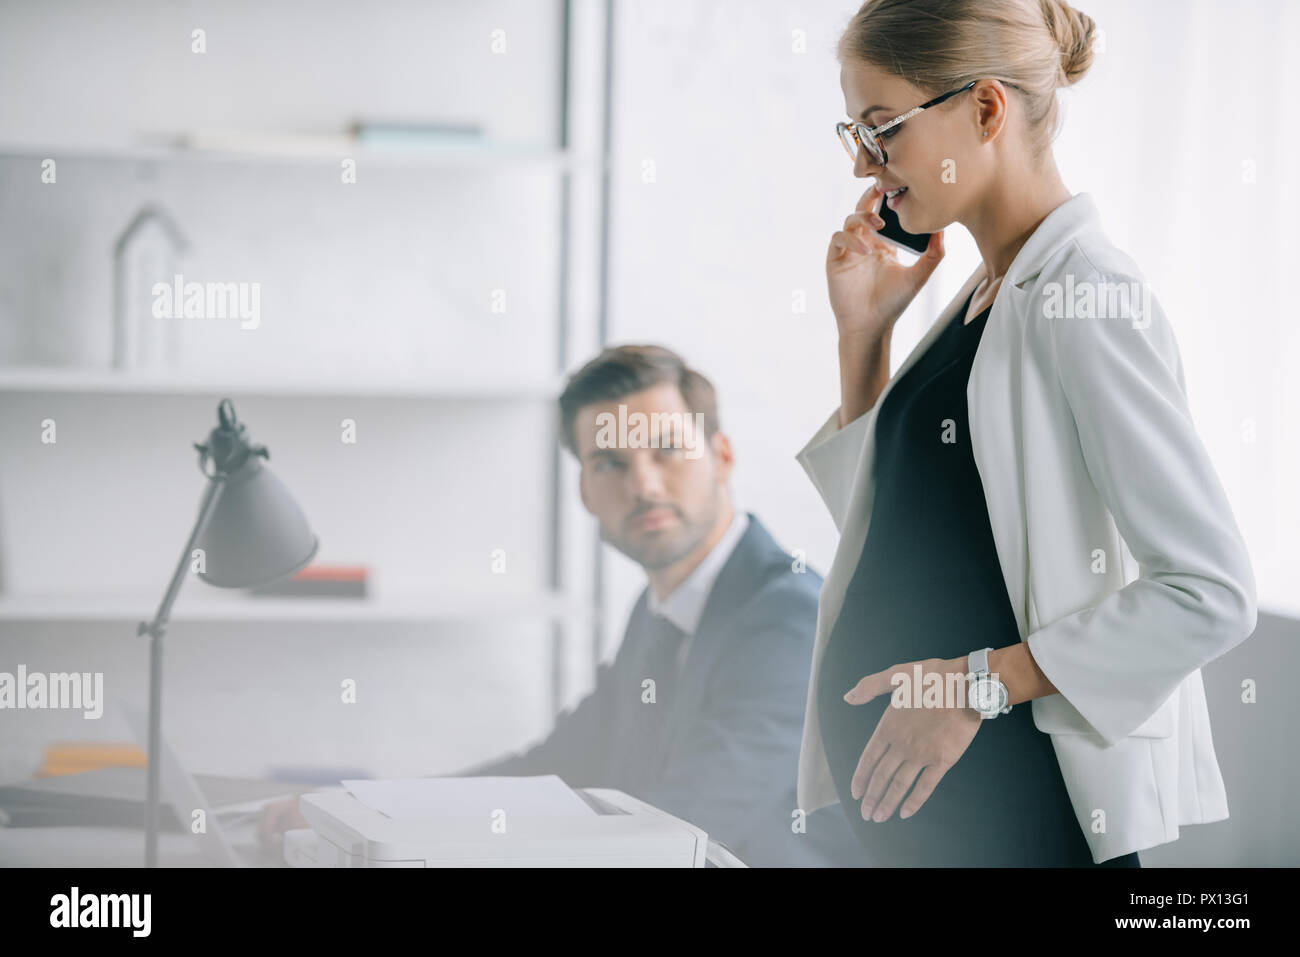 smiling pregnant businesswoman talking on smartphone while standing near colleague at workplace in office Stock Photo